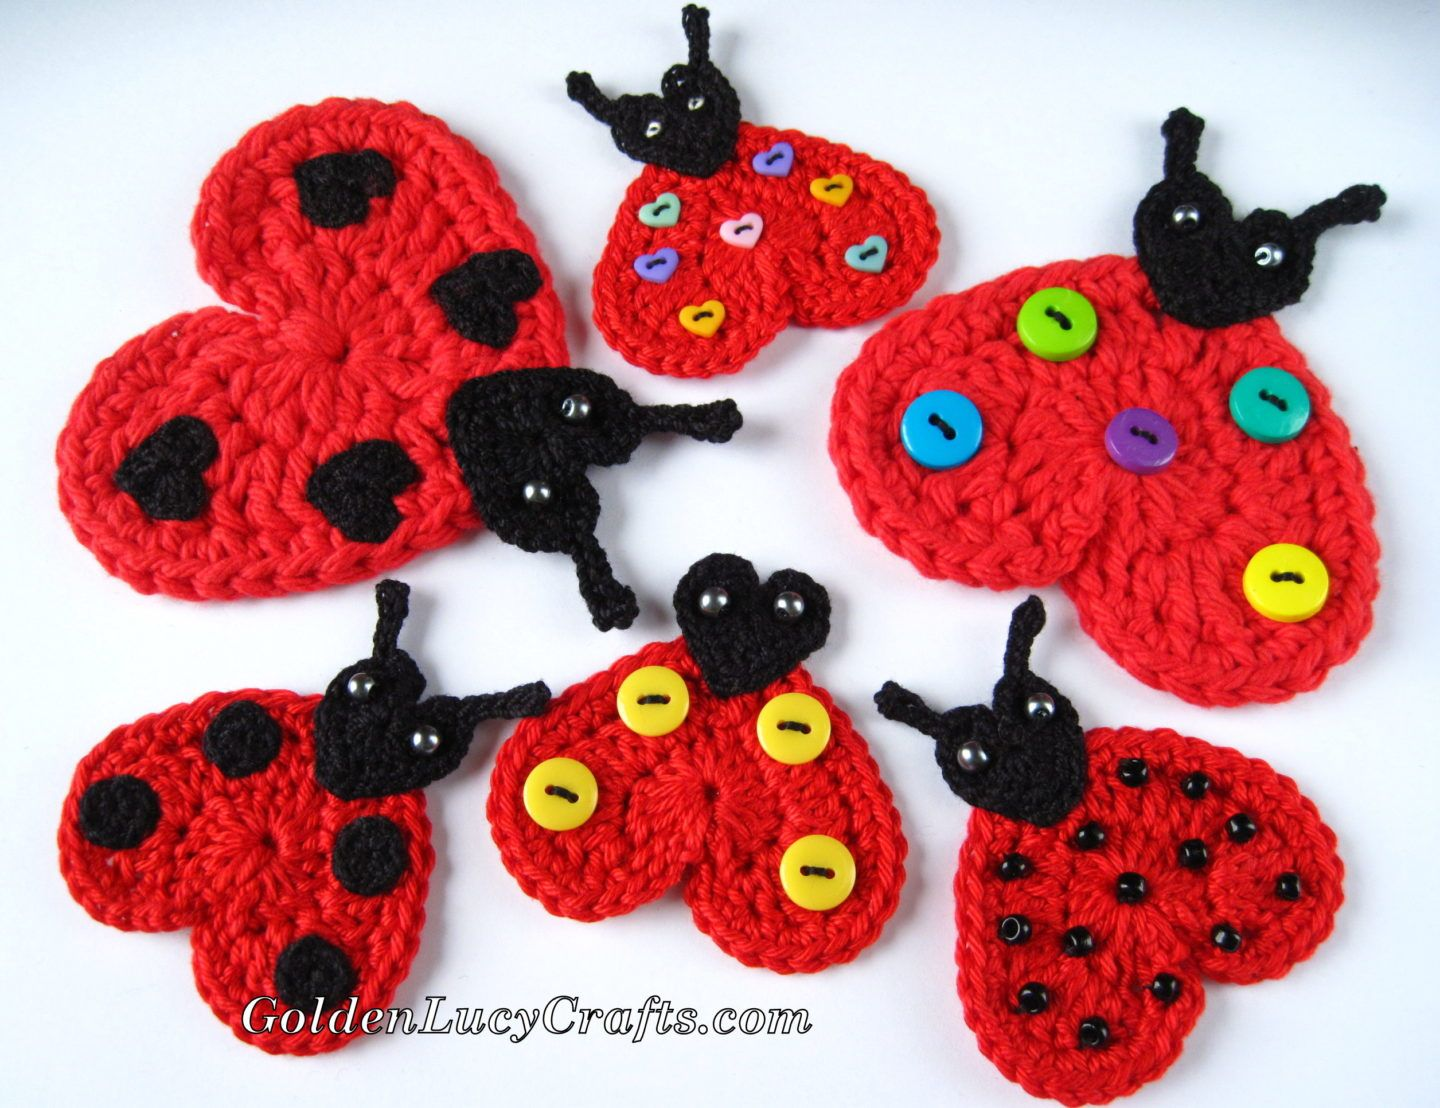 Crochet Ladybug Applique, Free Crochet Pattern | Pinterest | Häkeln